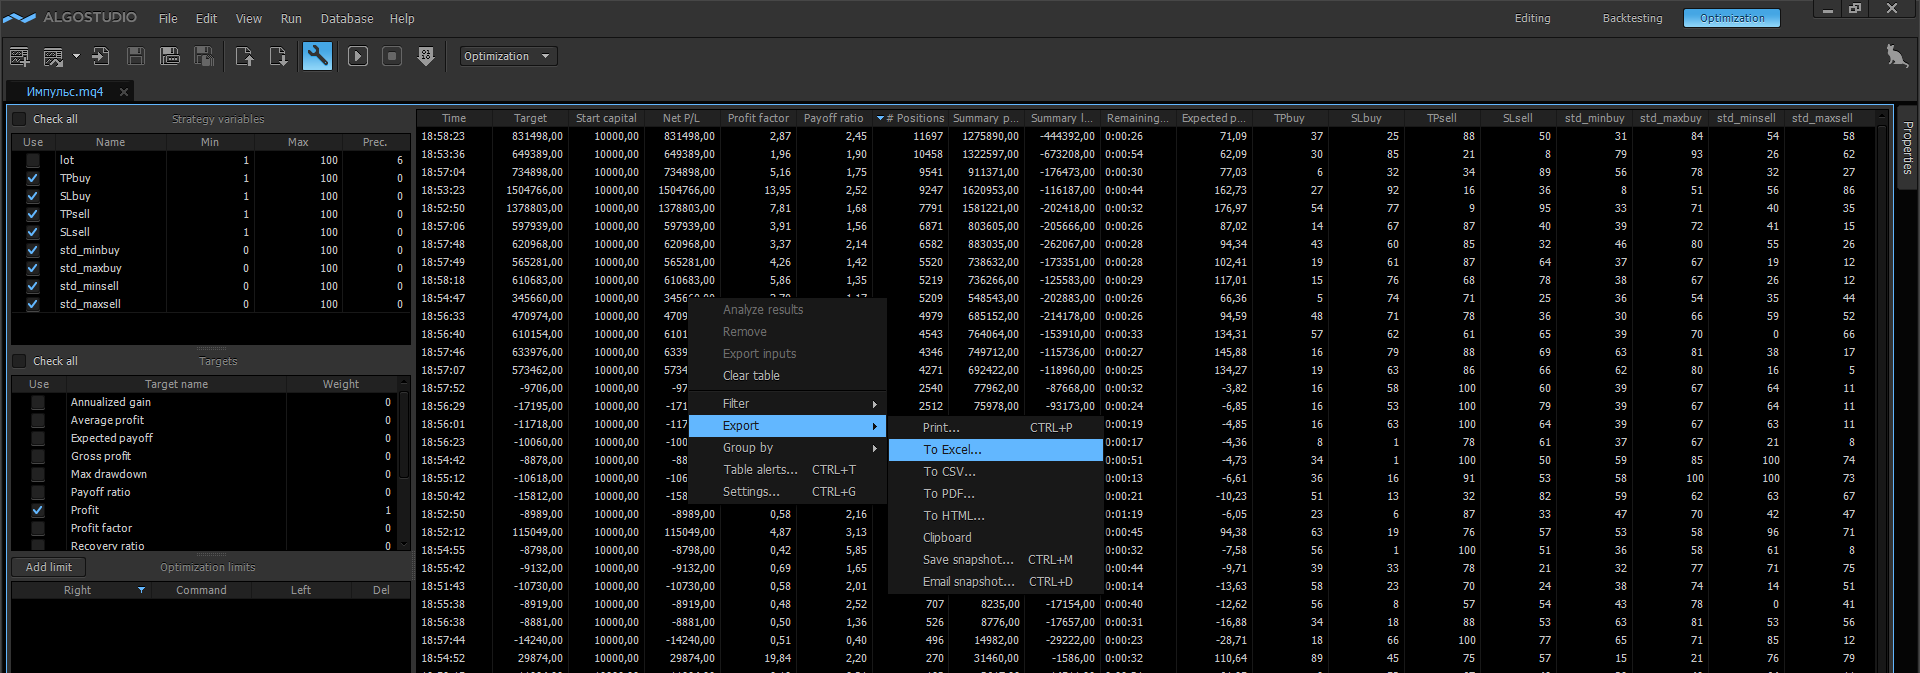 Implementation in Protrader looks as follows after holding the optimization in AlgoStudio.